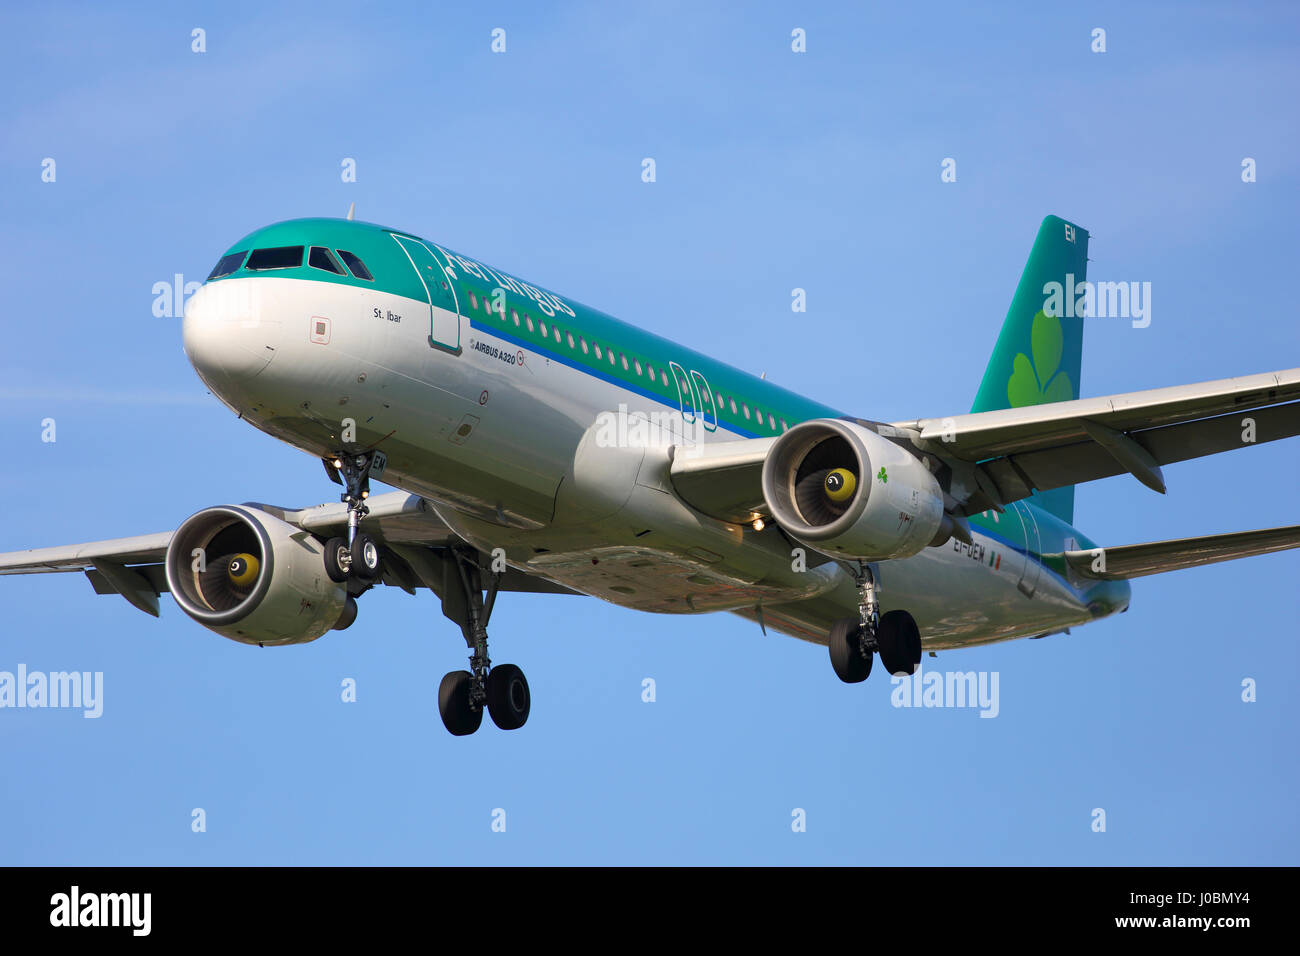 EI-DEM Aer Lingus Airbus A320-200 cn 2411 on approach to London Heathrow airport - Stock Image